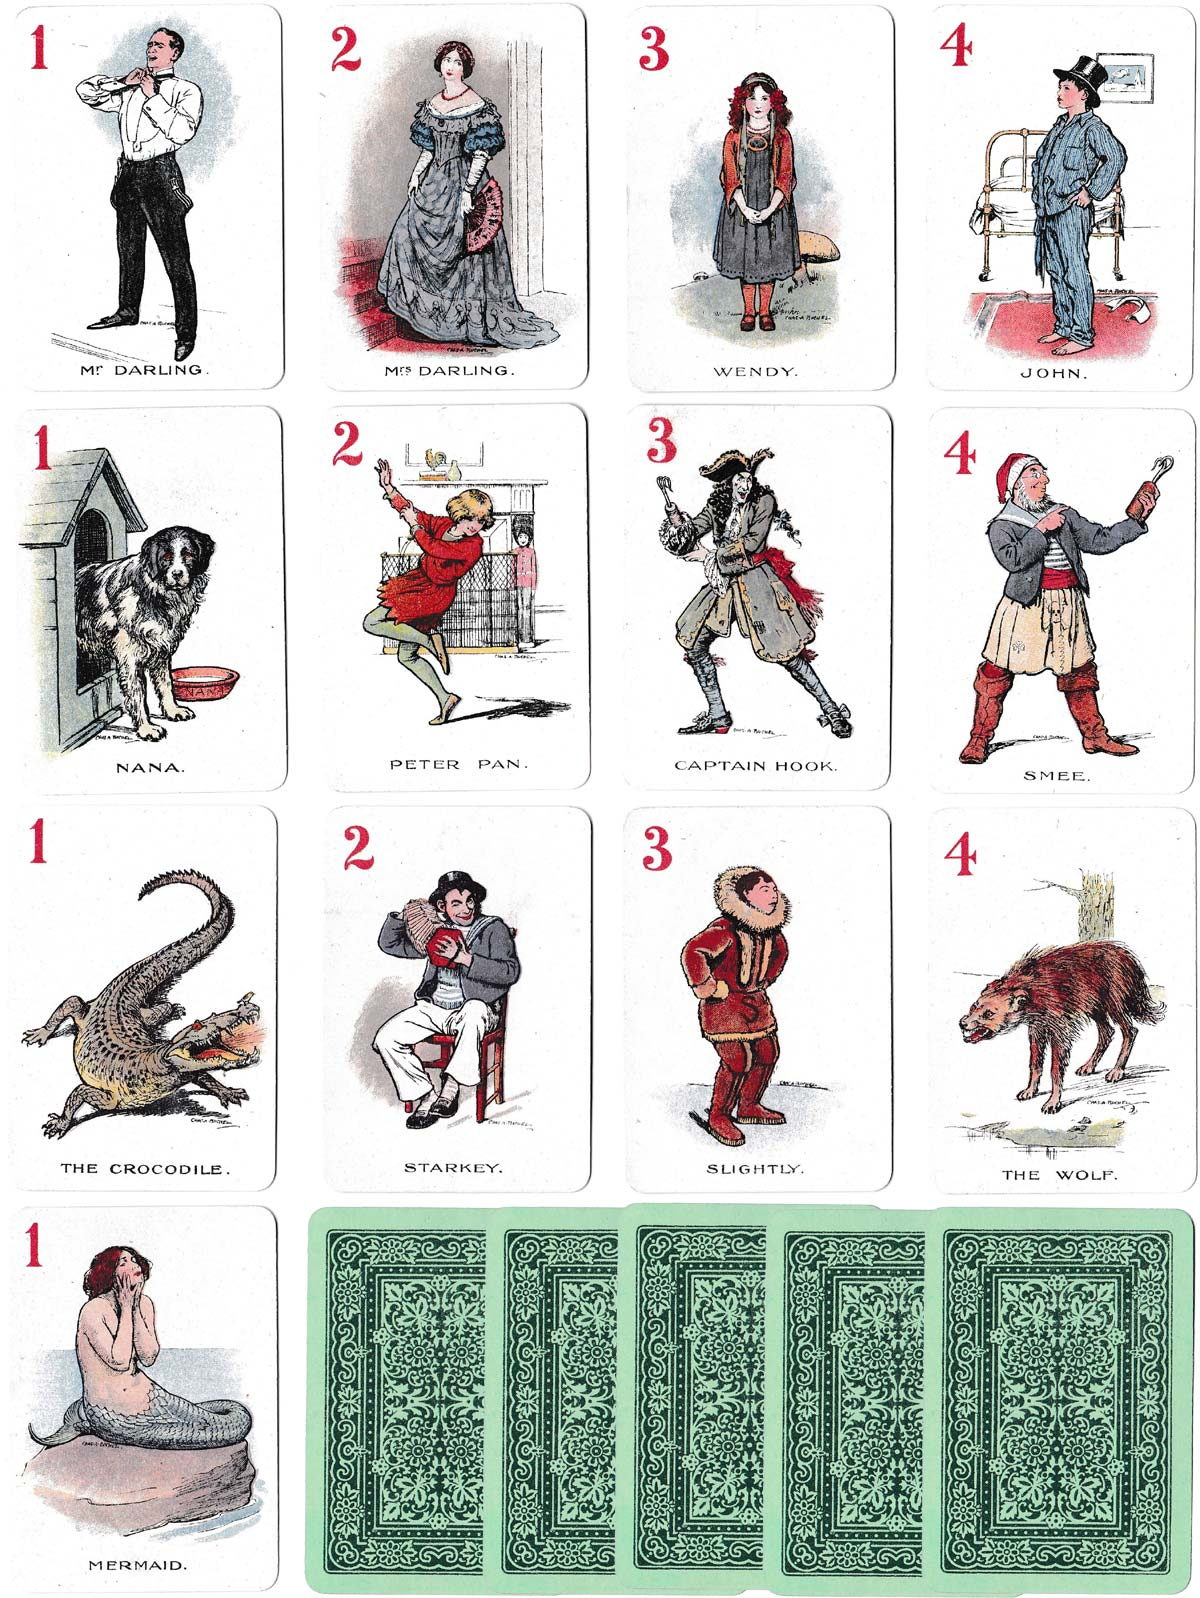 """""""Peter Pan"""" pictorial card game published by H. P. Gibson & Sons Ltd in c.1912 and manufactured by Thomas de la Rue & Co Ltd  from drawings by Charles A. Buchel"""